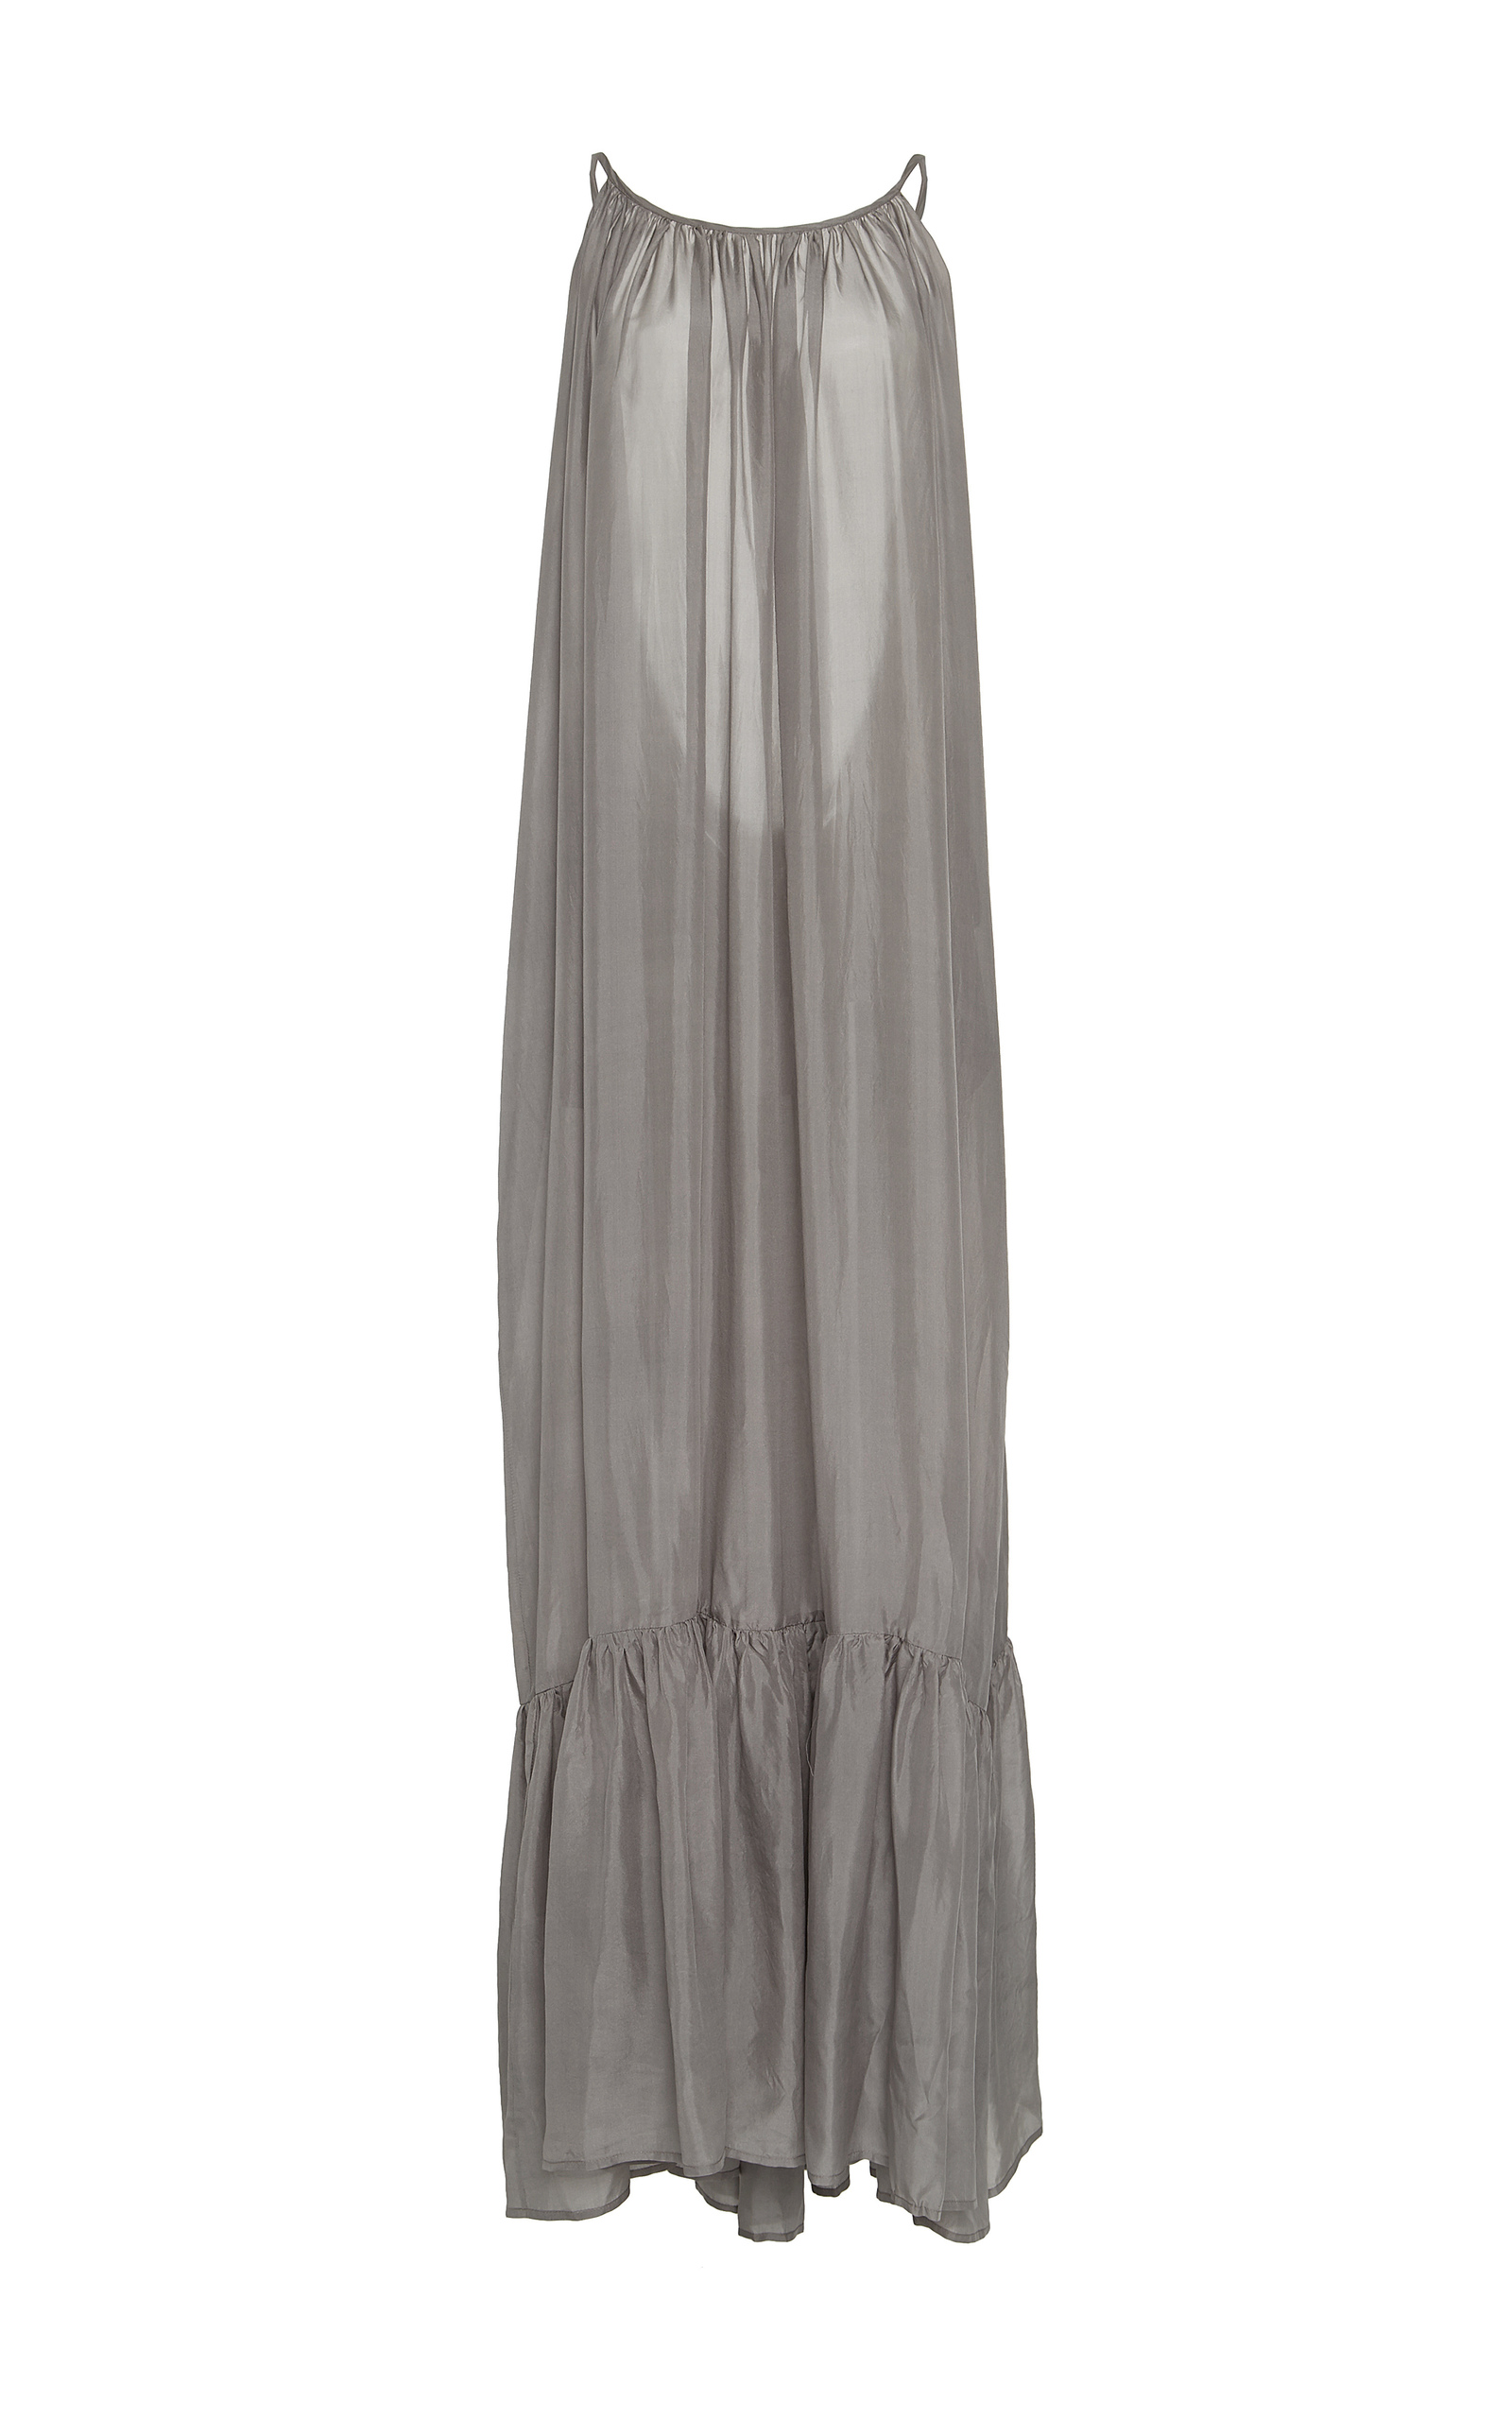 Kalita violet grey Brigitte backless dress